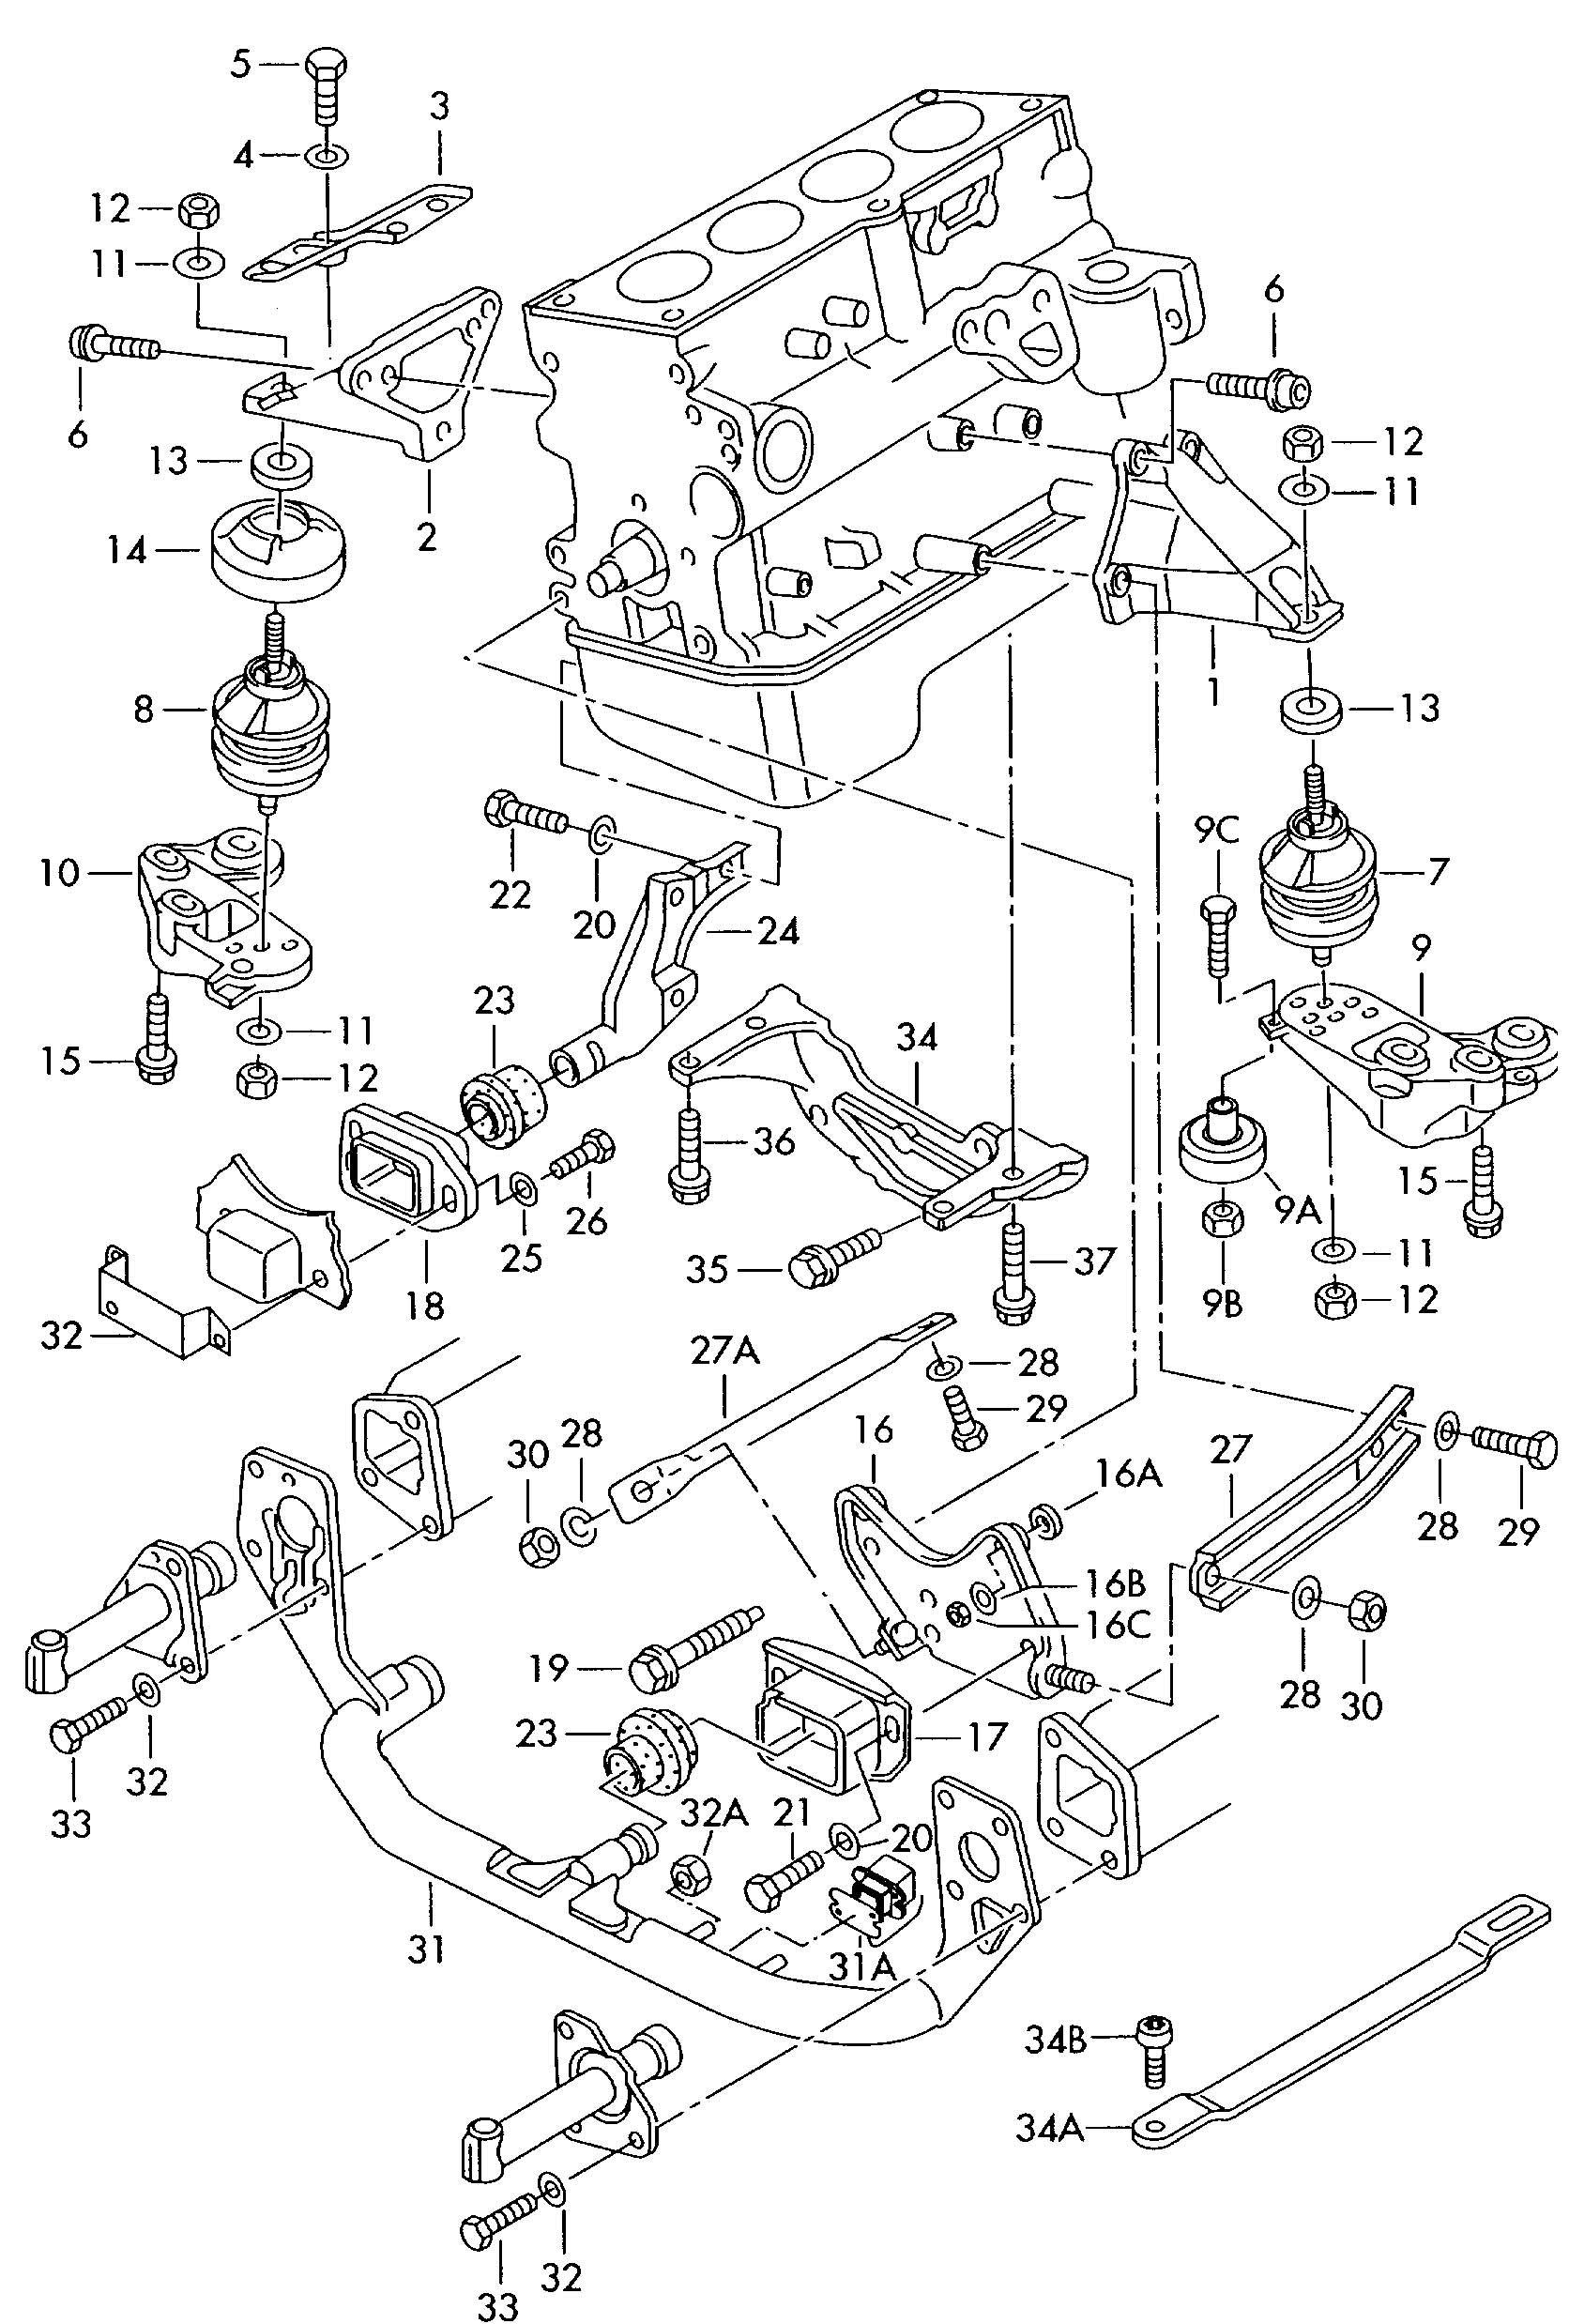 Vw Awm Engine Diagram And Wiring Audi B6 050121113c Furthermore P 0900c152801bf604 As Well Turbo Oil Feed Pipe Line 18t 01 05 A4